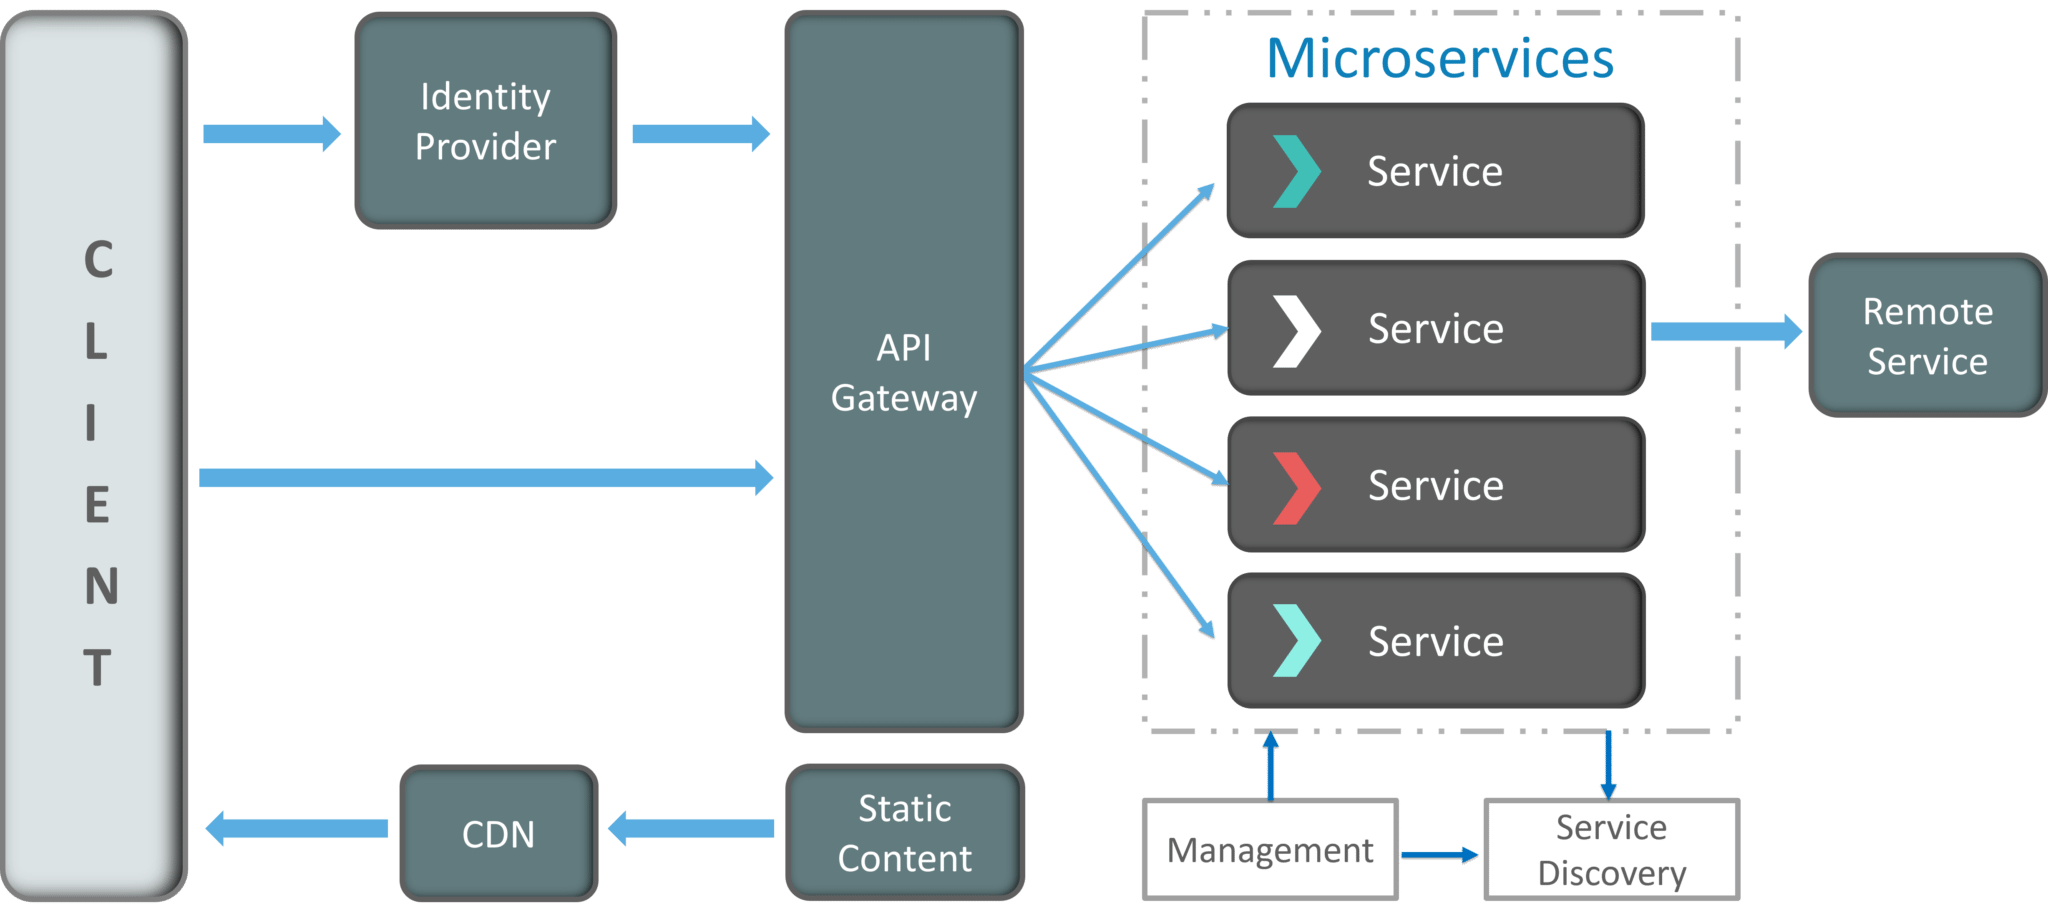 Architecture Of Microservices - Microservice Architecture - Edureka